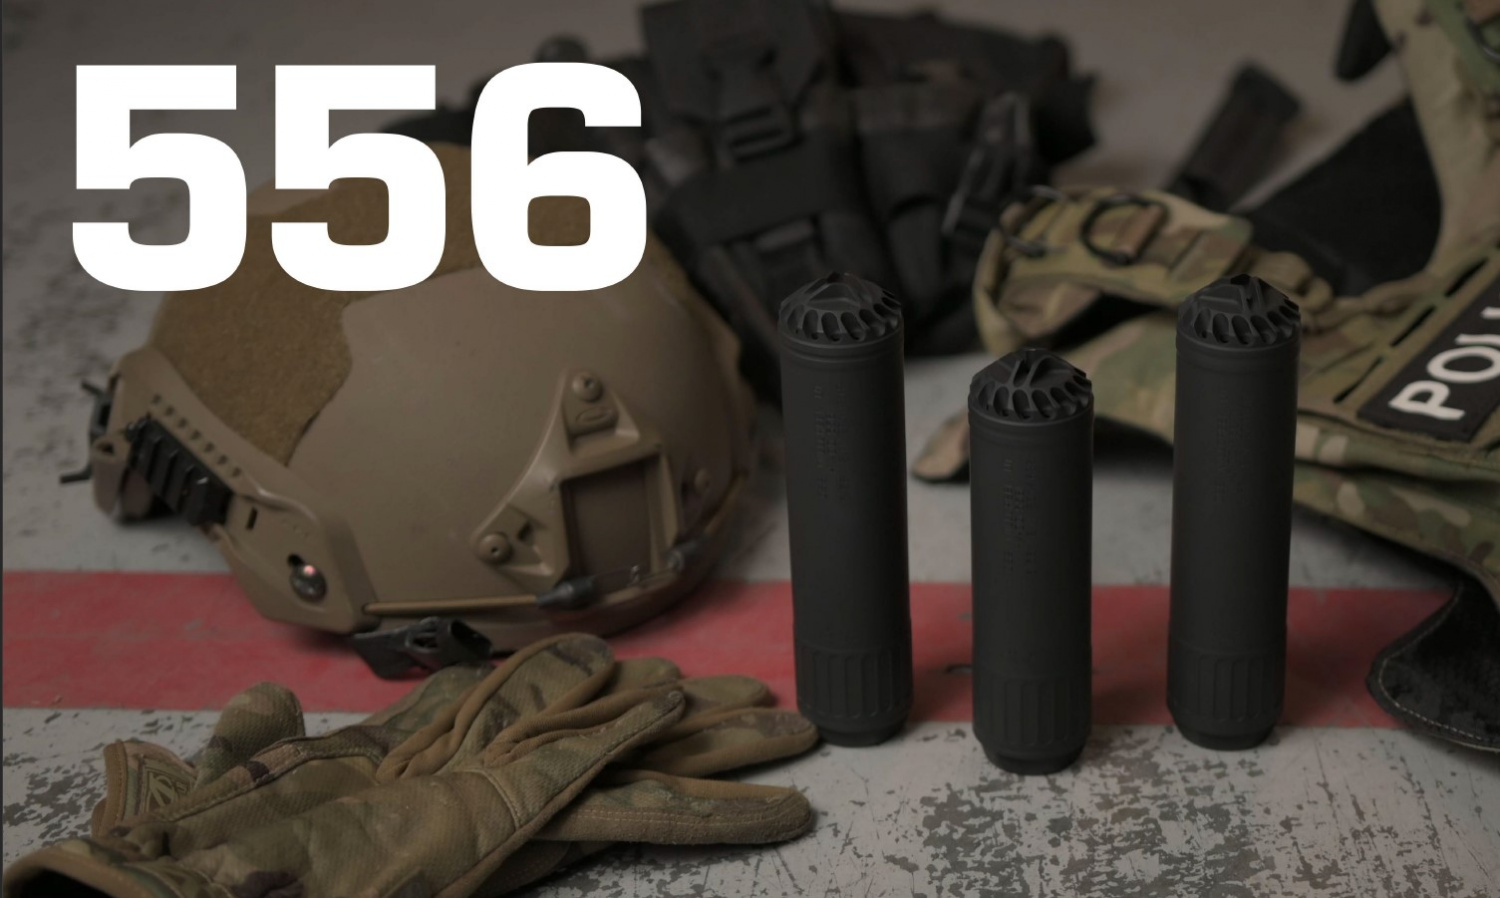 You might find some HX-QD 556 cans like these on some SWAT officers' rifles in one of Centrifuge's training courses.